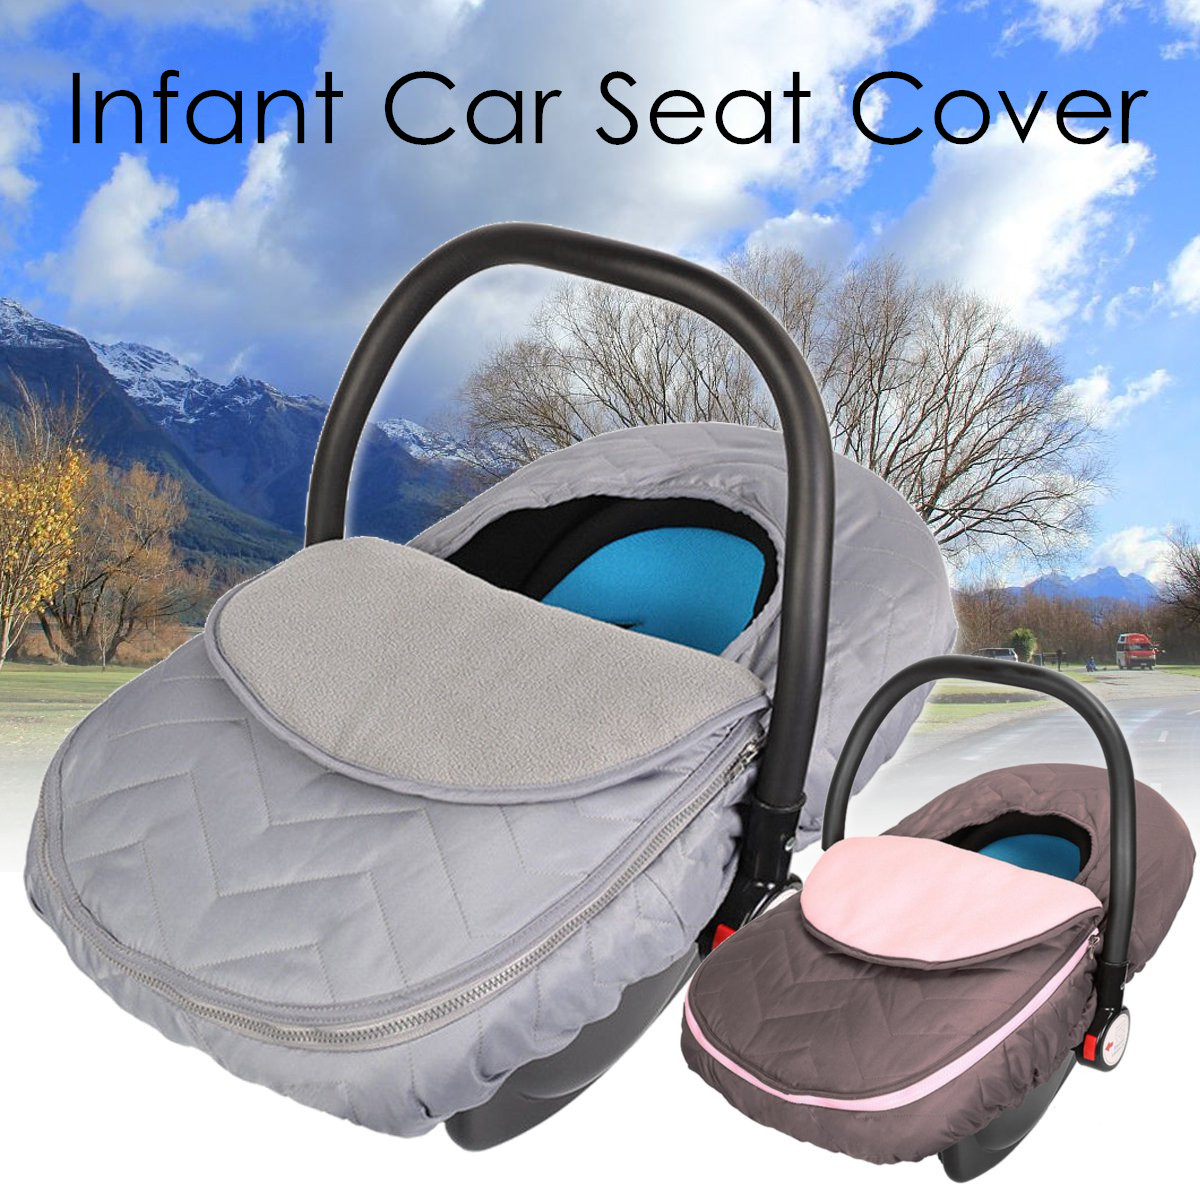 Infant Car Seat Cover Carrier Cover Stroller Accessories For Keeping Your Baby Cozy and Warm